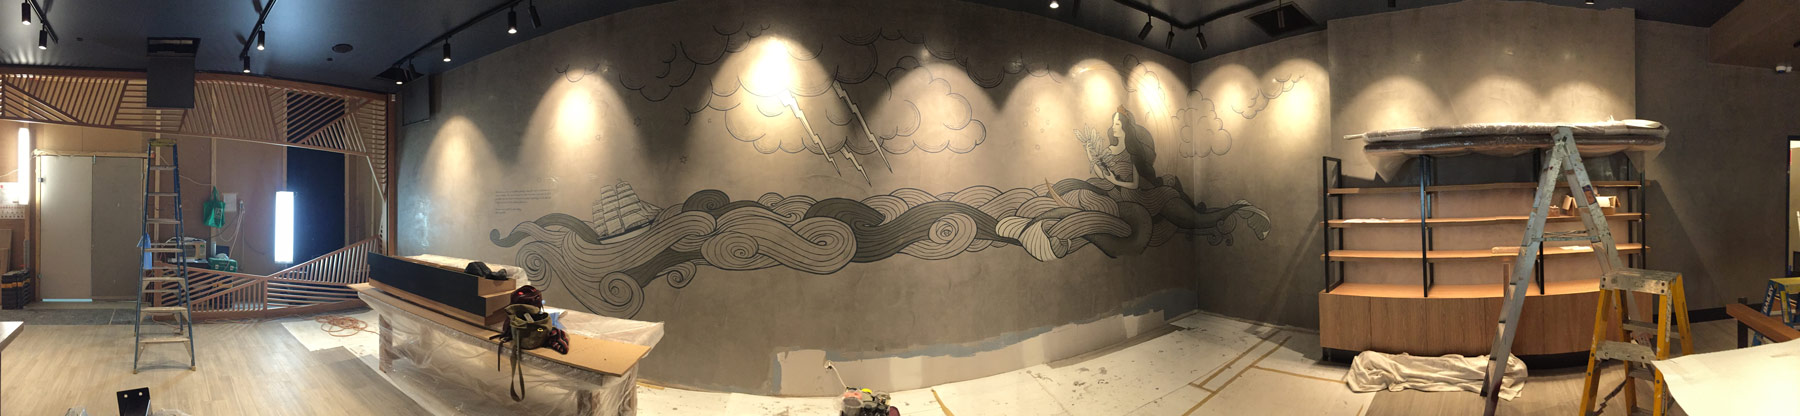 the-art-of-wall-starbucks-mural-eastgardens-8